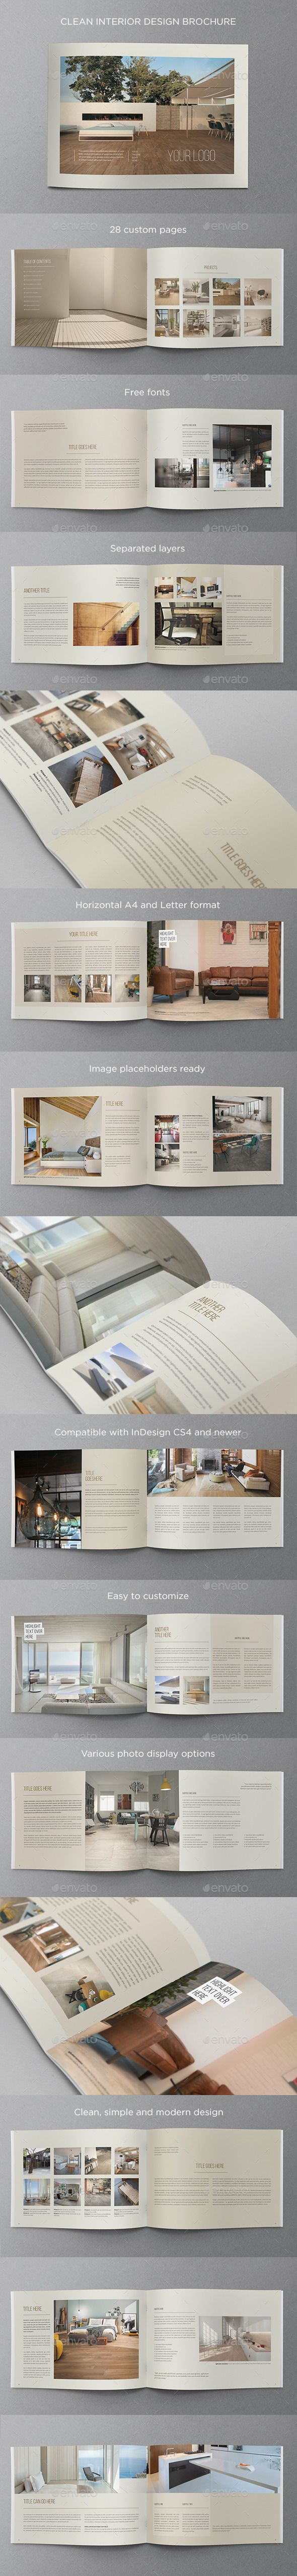 Clean Interior Design Brochure Template #brochure Download: http://graphicriver.net/item/clean-interior-design-brochure/11531896?ref=ksioks